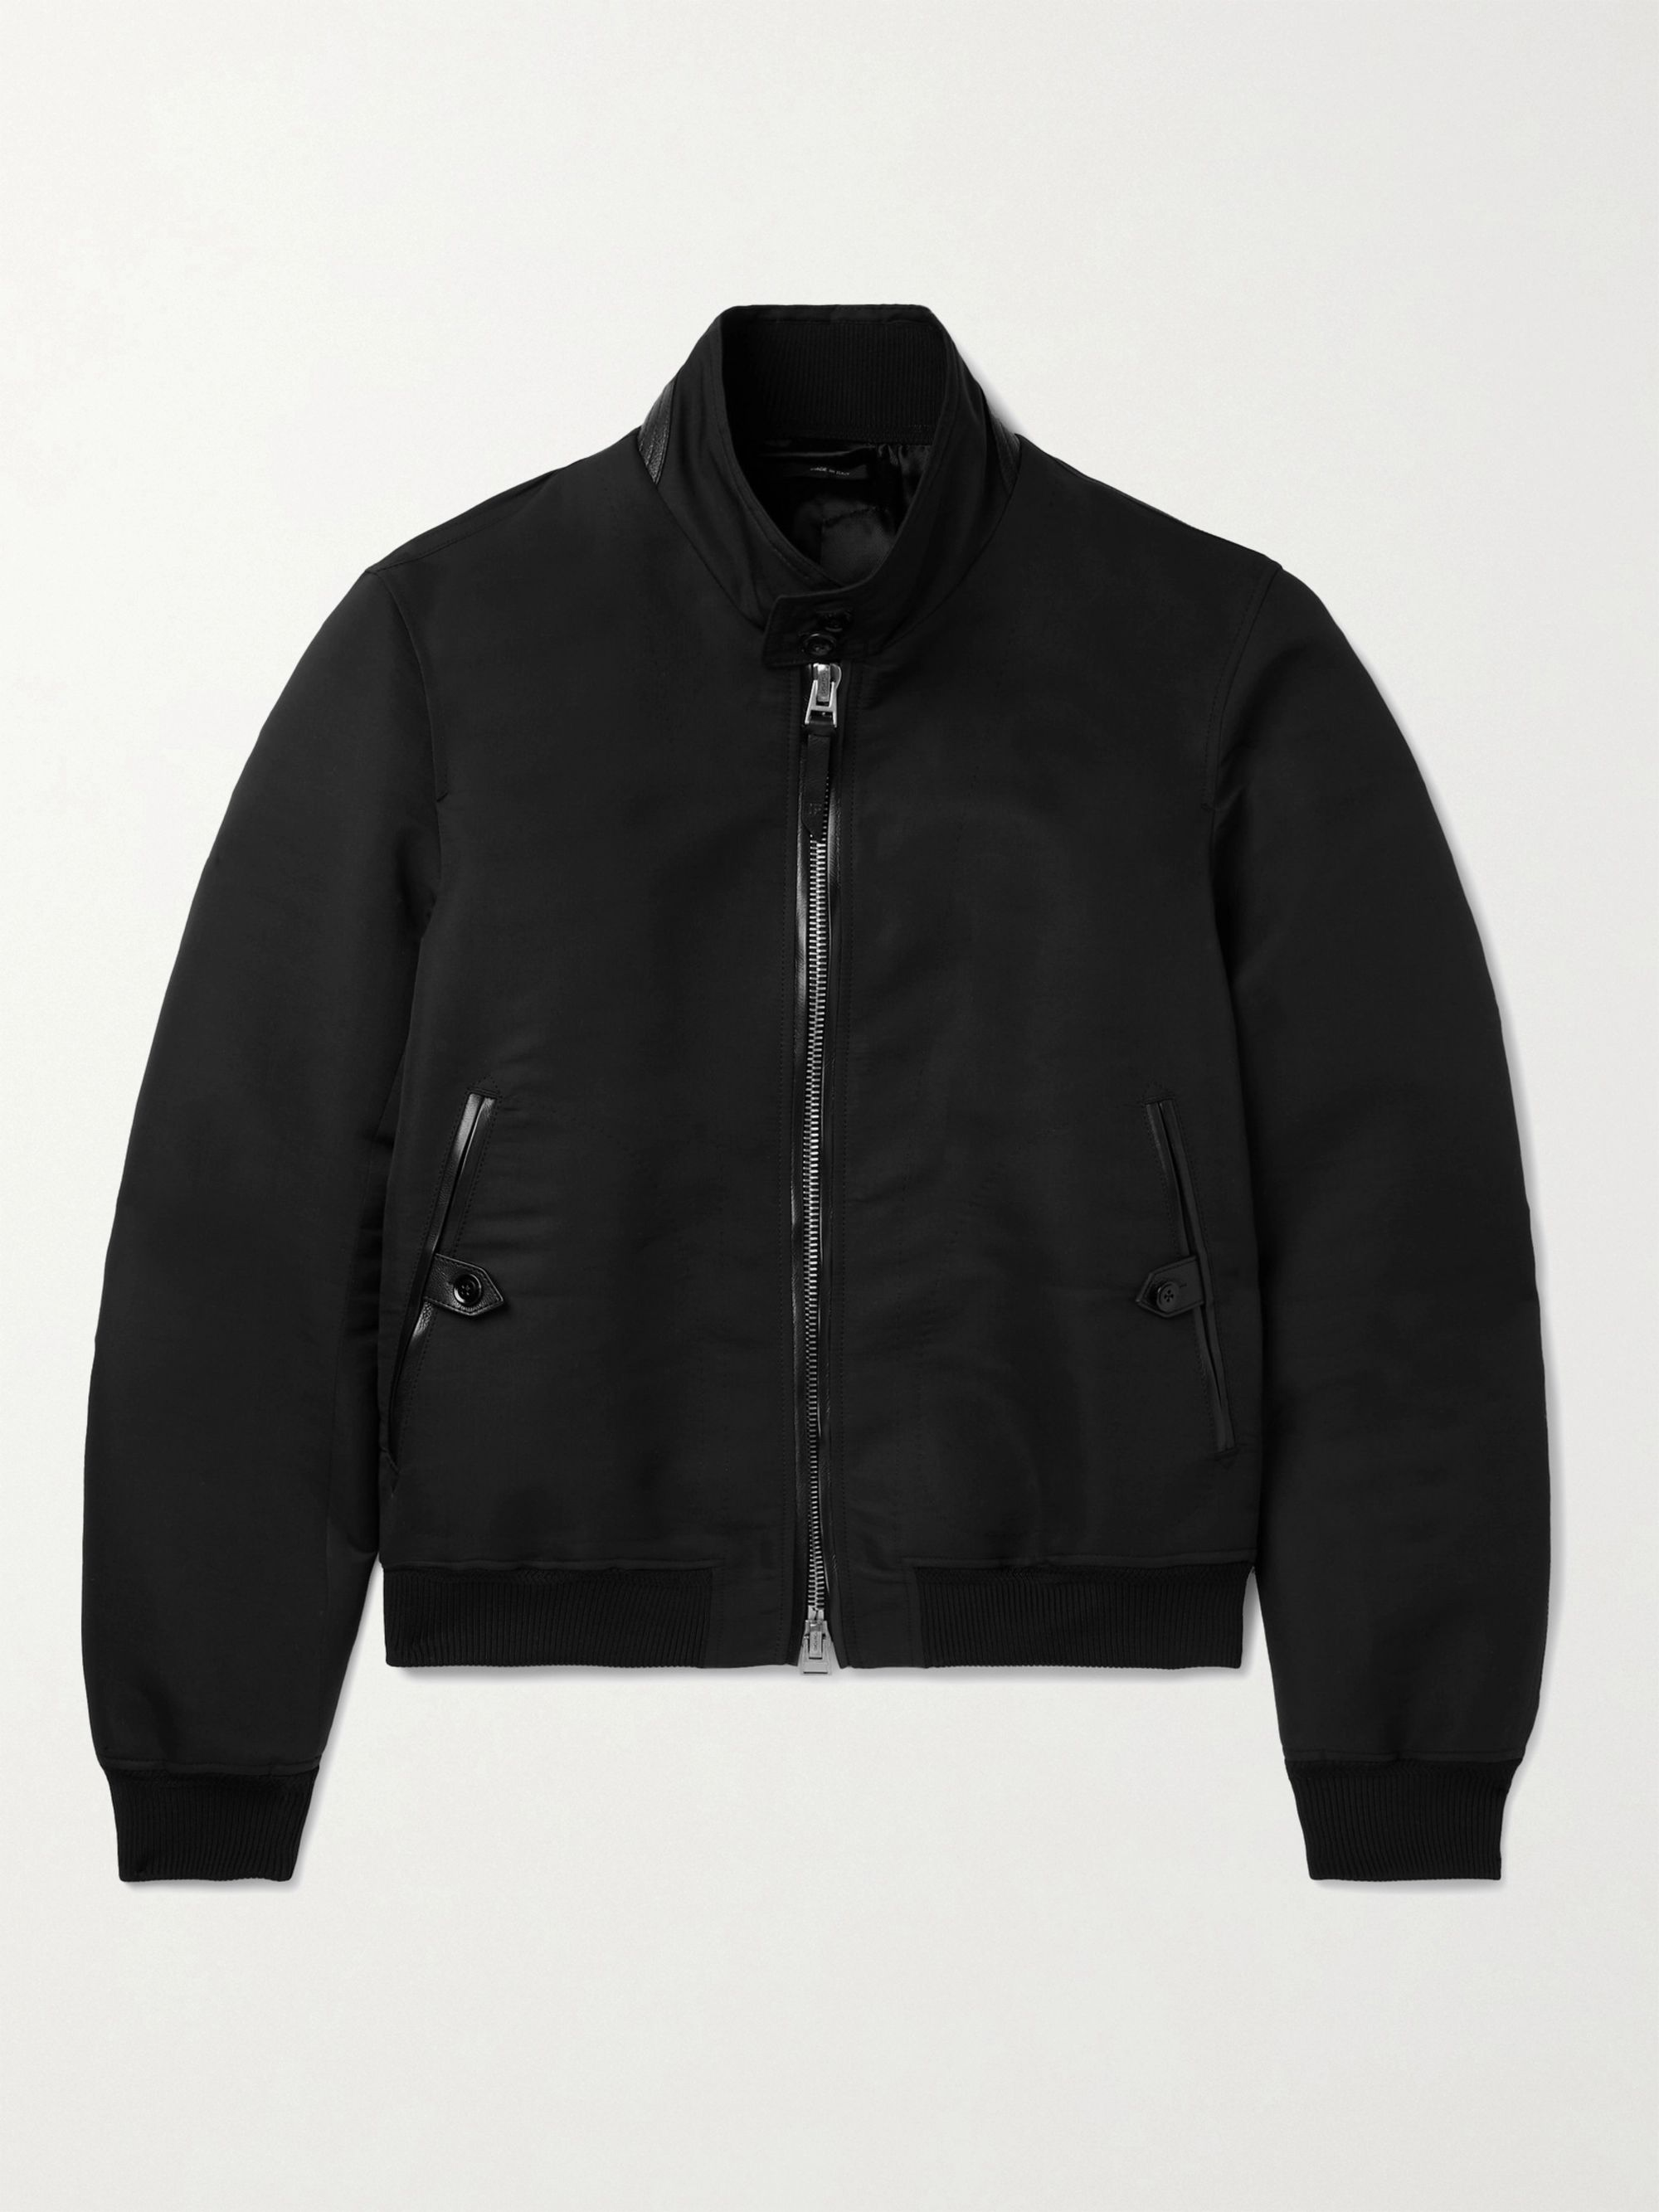 TOM FORD Slim-Fit Leather-Trimmed Garment-Dyed Cotton and Silk-Blend Poplin Harrington Jacket